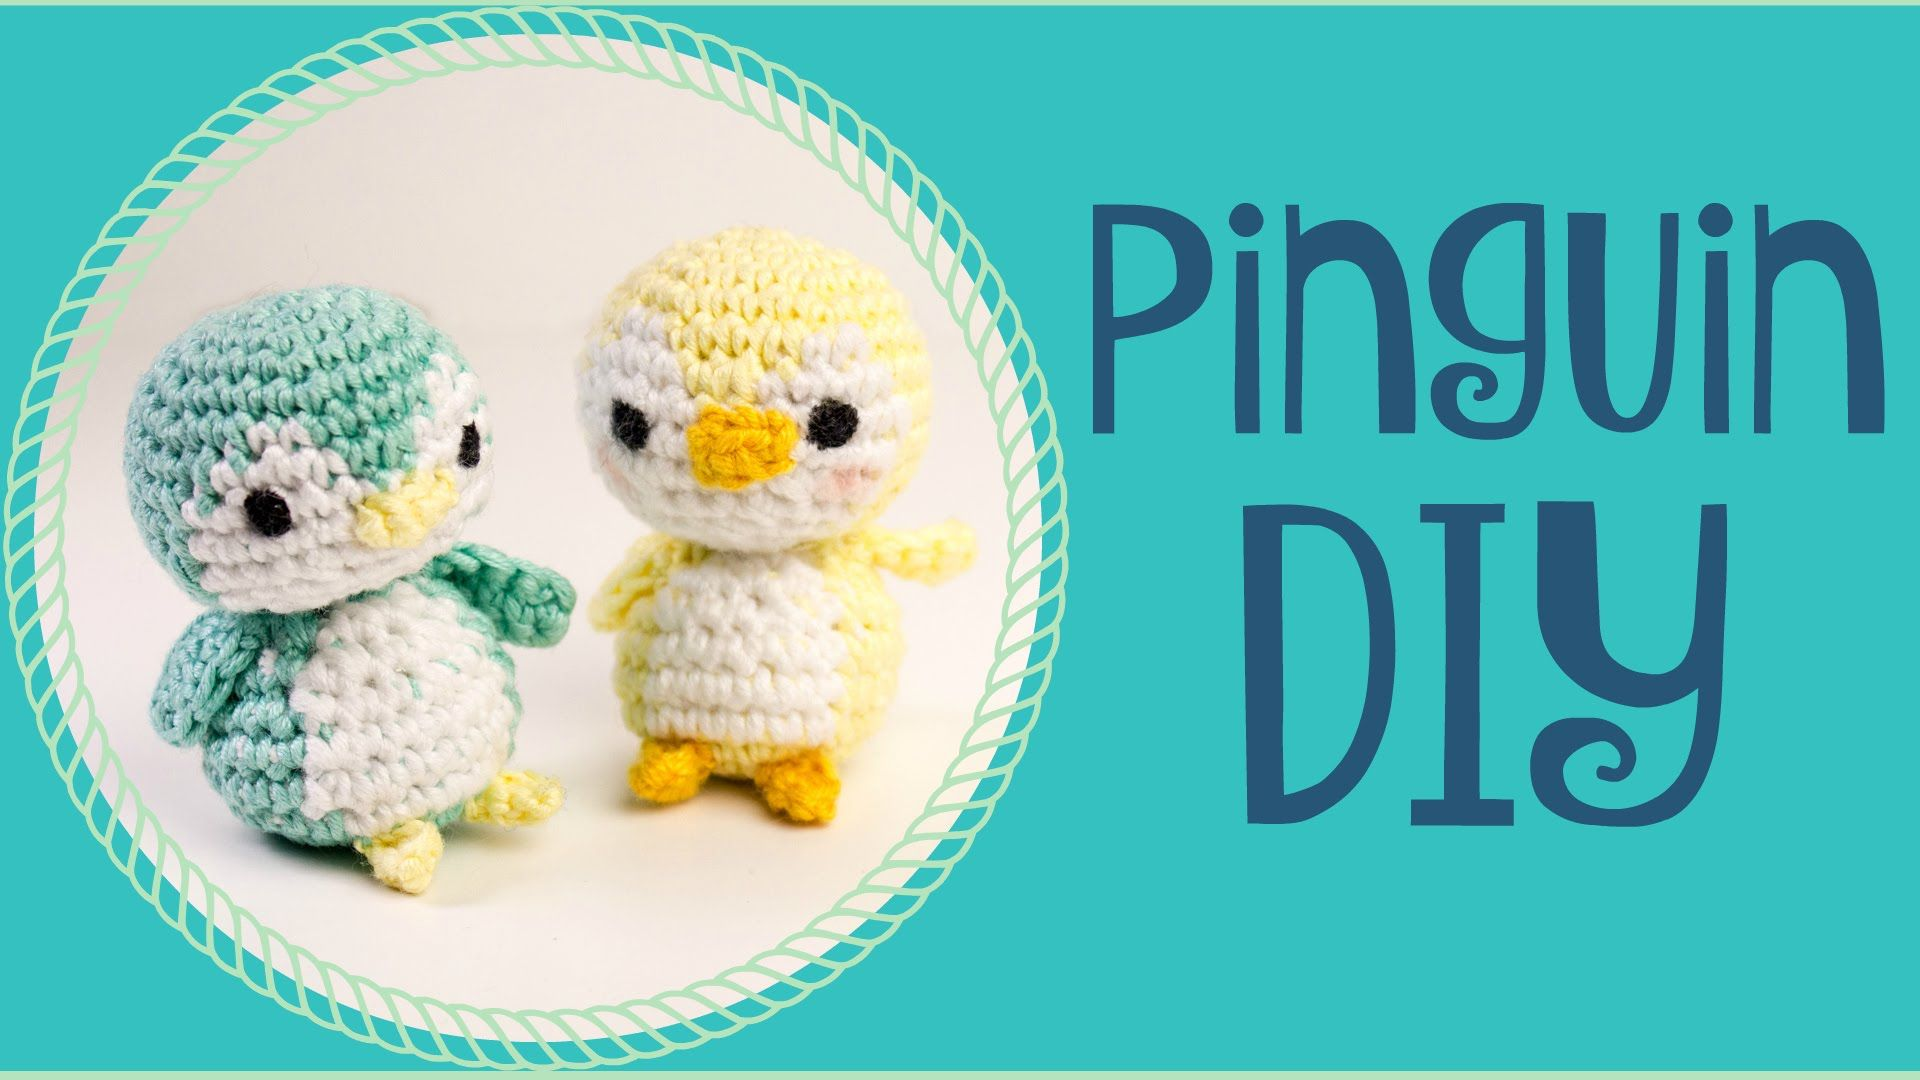 Pinguin hkelanleitung do it yourself youtube pinterest pinguin hkelanleitung do it yourself youtube solutioingenieria Images